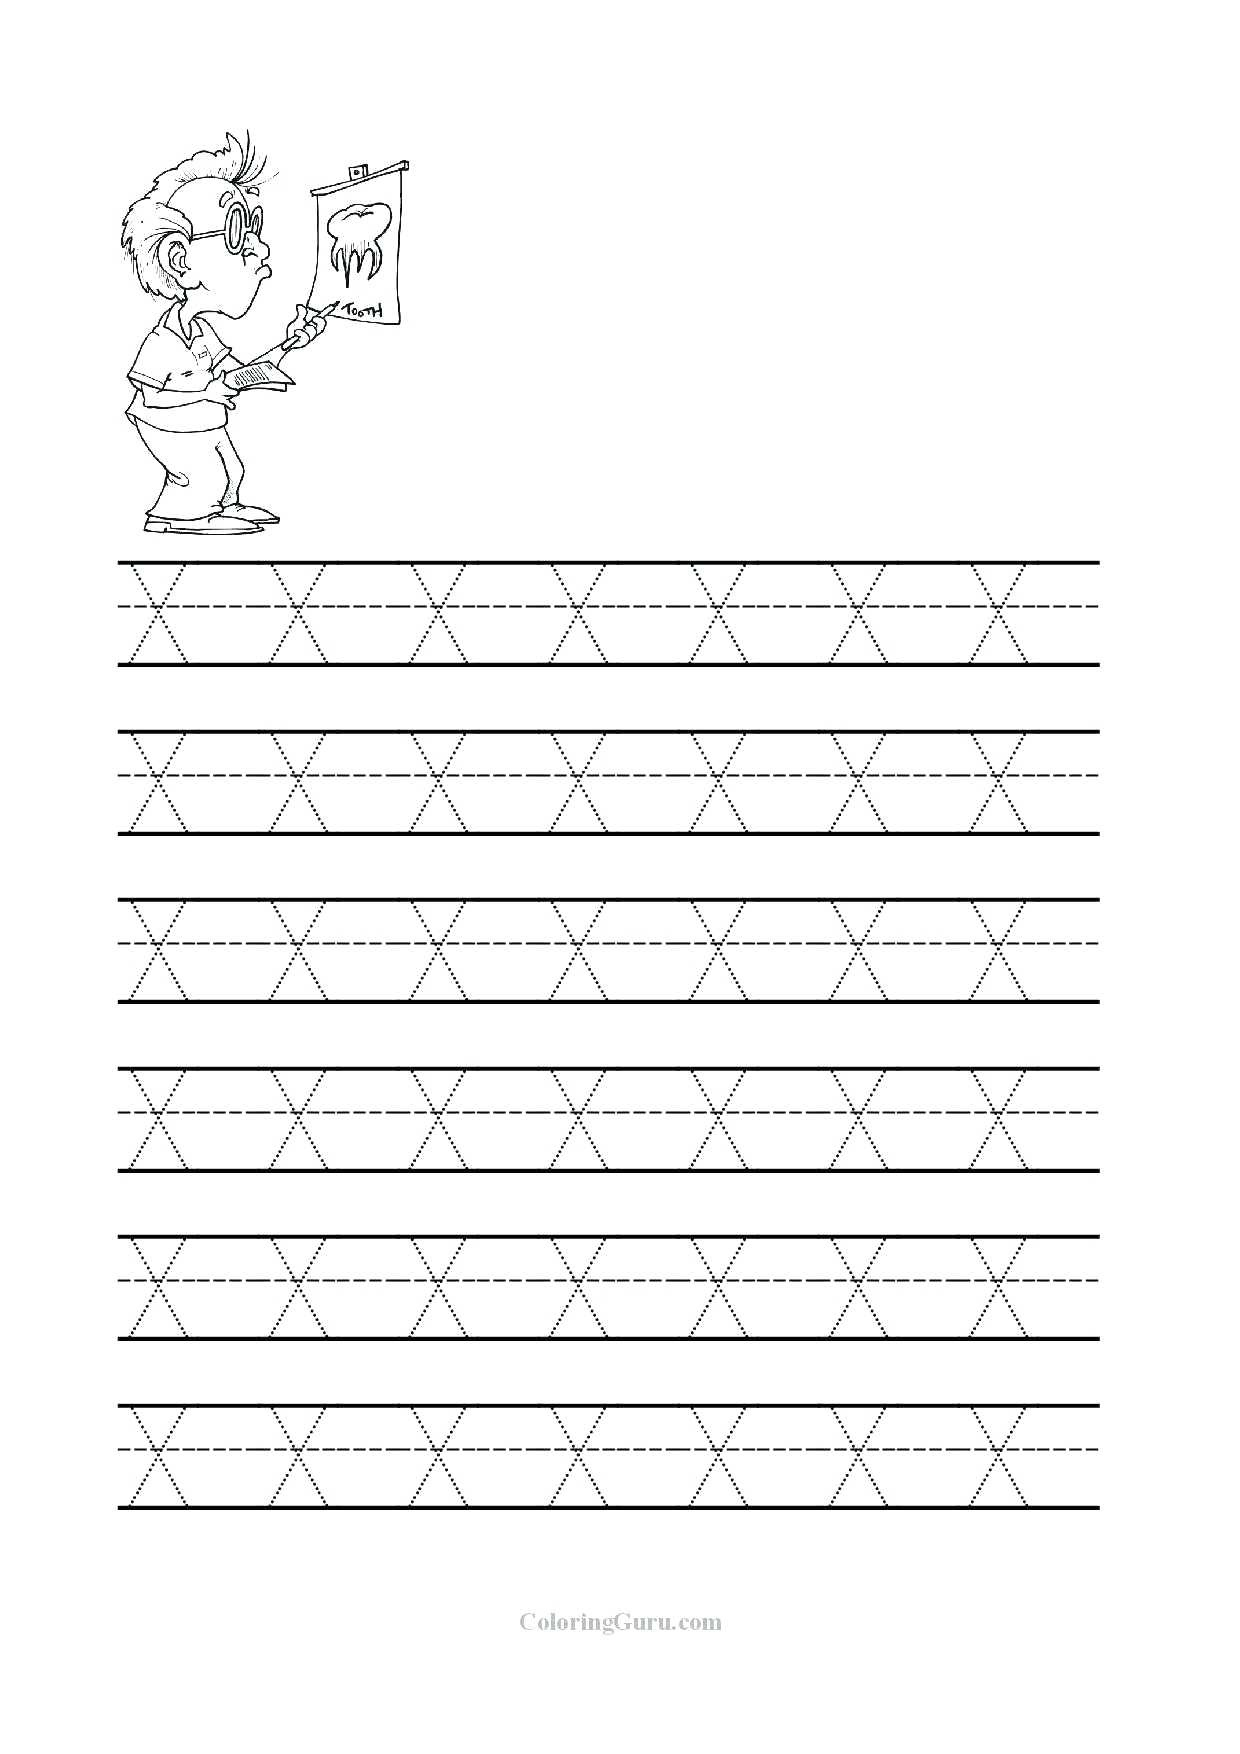 Free Printable Name Tracing Worksheets – Shoppingfoorme.club - Free Printable Name Tracing Worksheets